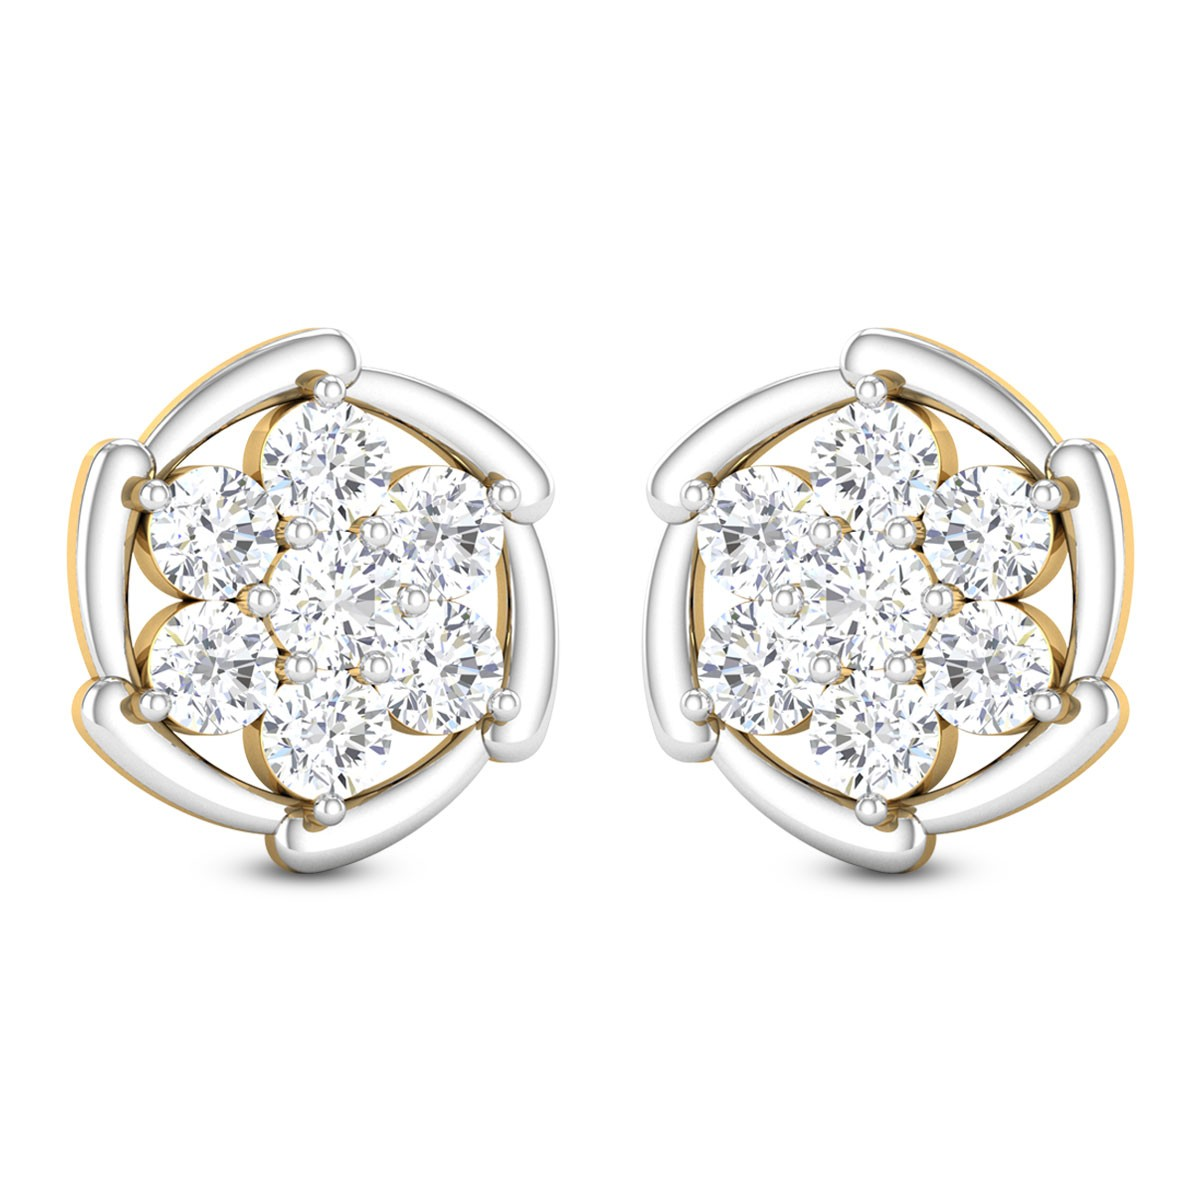 Shaham Floral Solitaire Stud Earrings